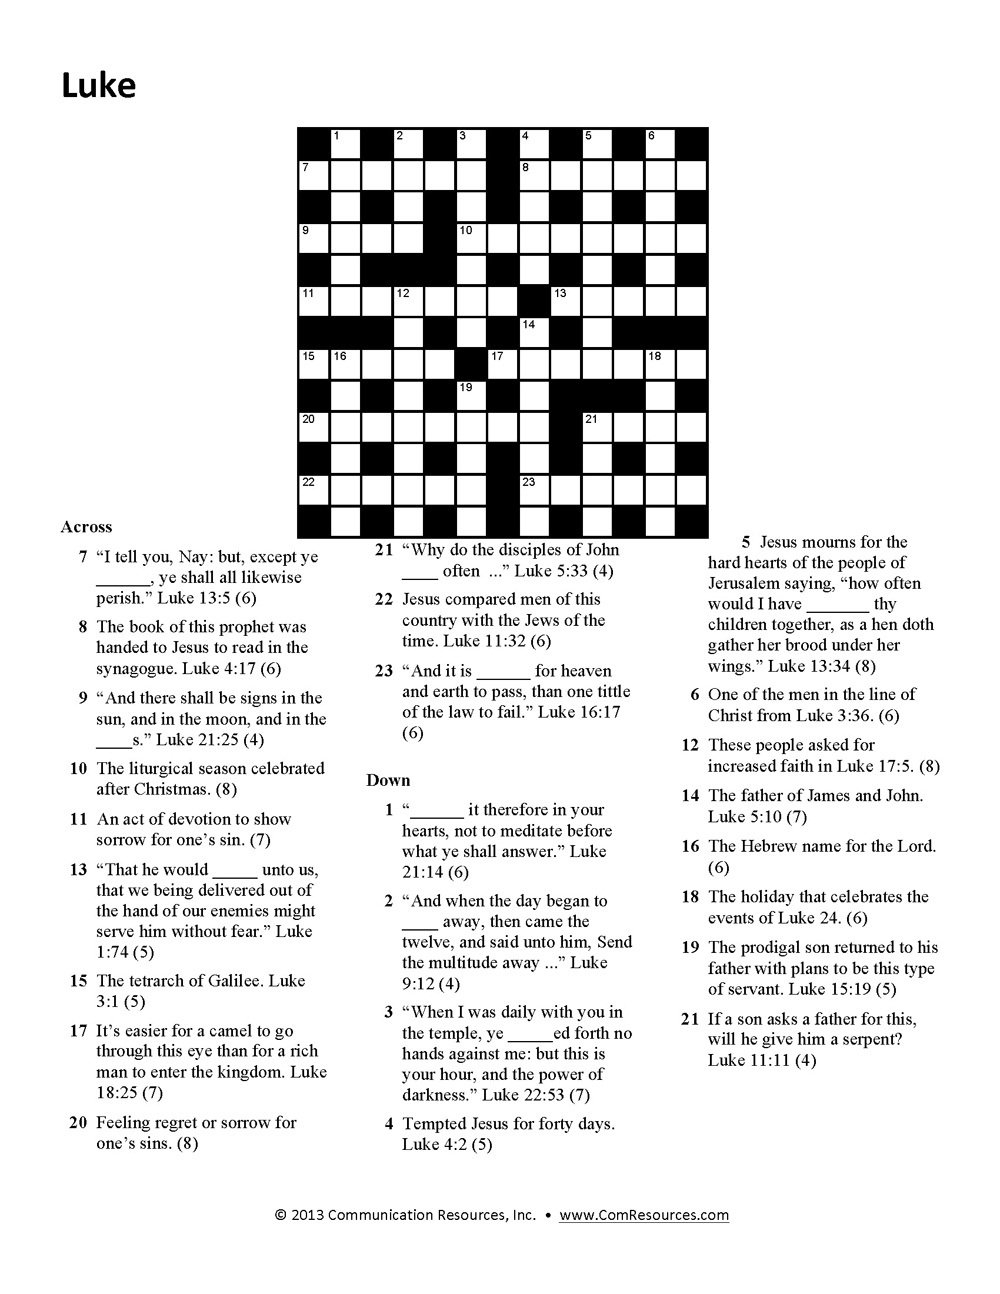 15 Fun Bible Crossword Puzzles | Kittybabylove - Printable Christian Crossword Puzzles